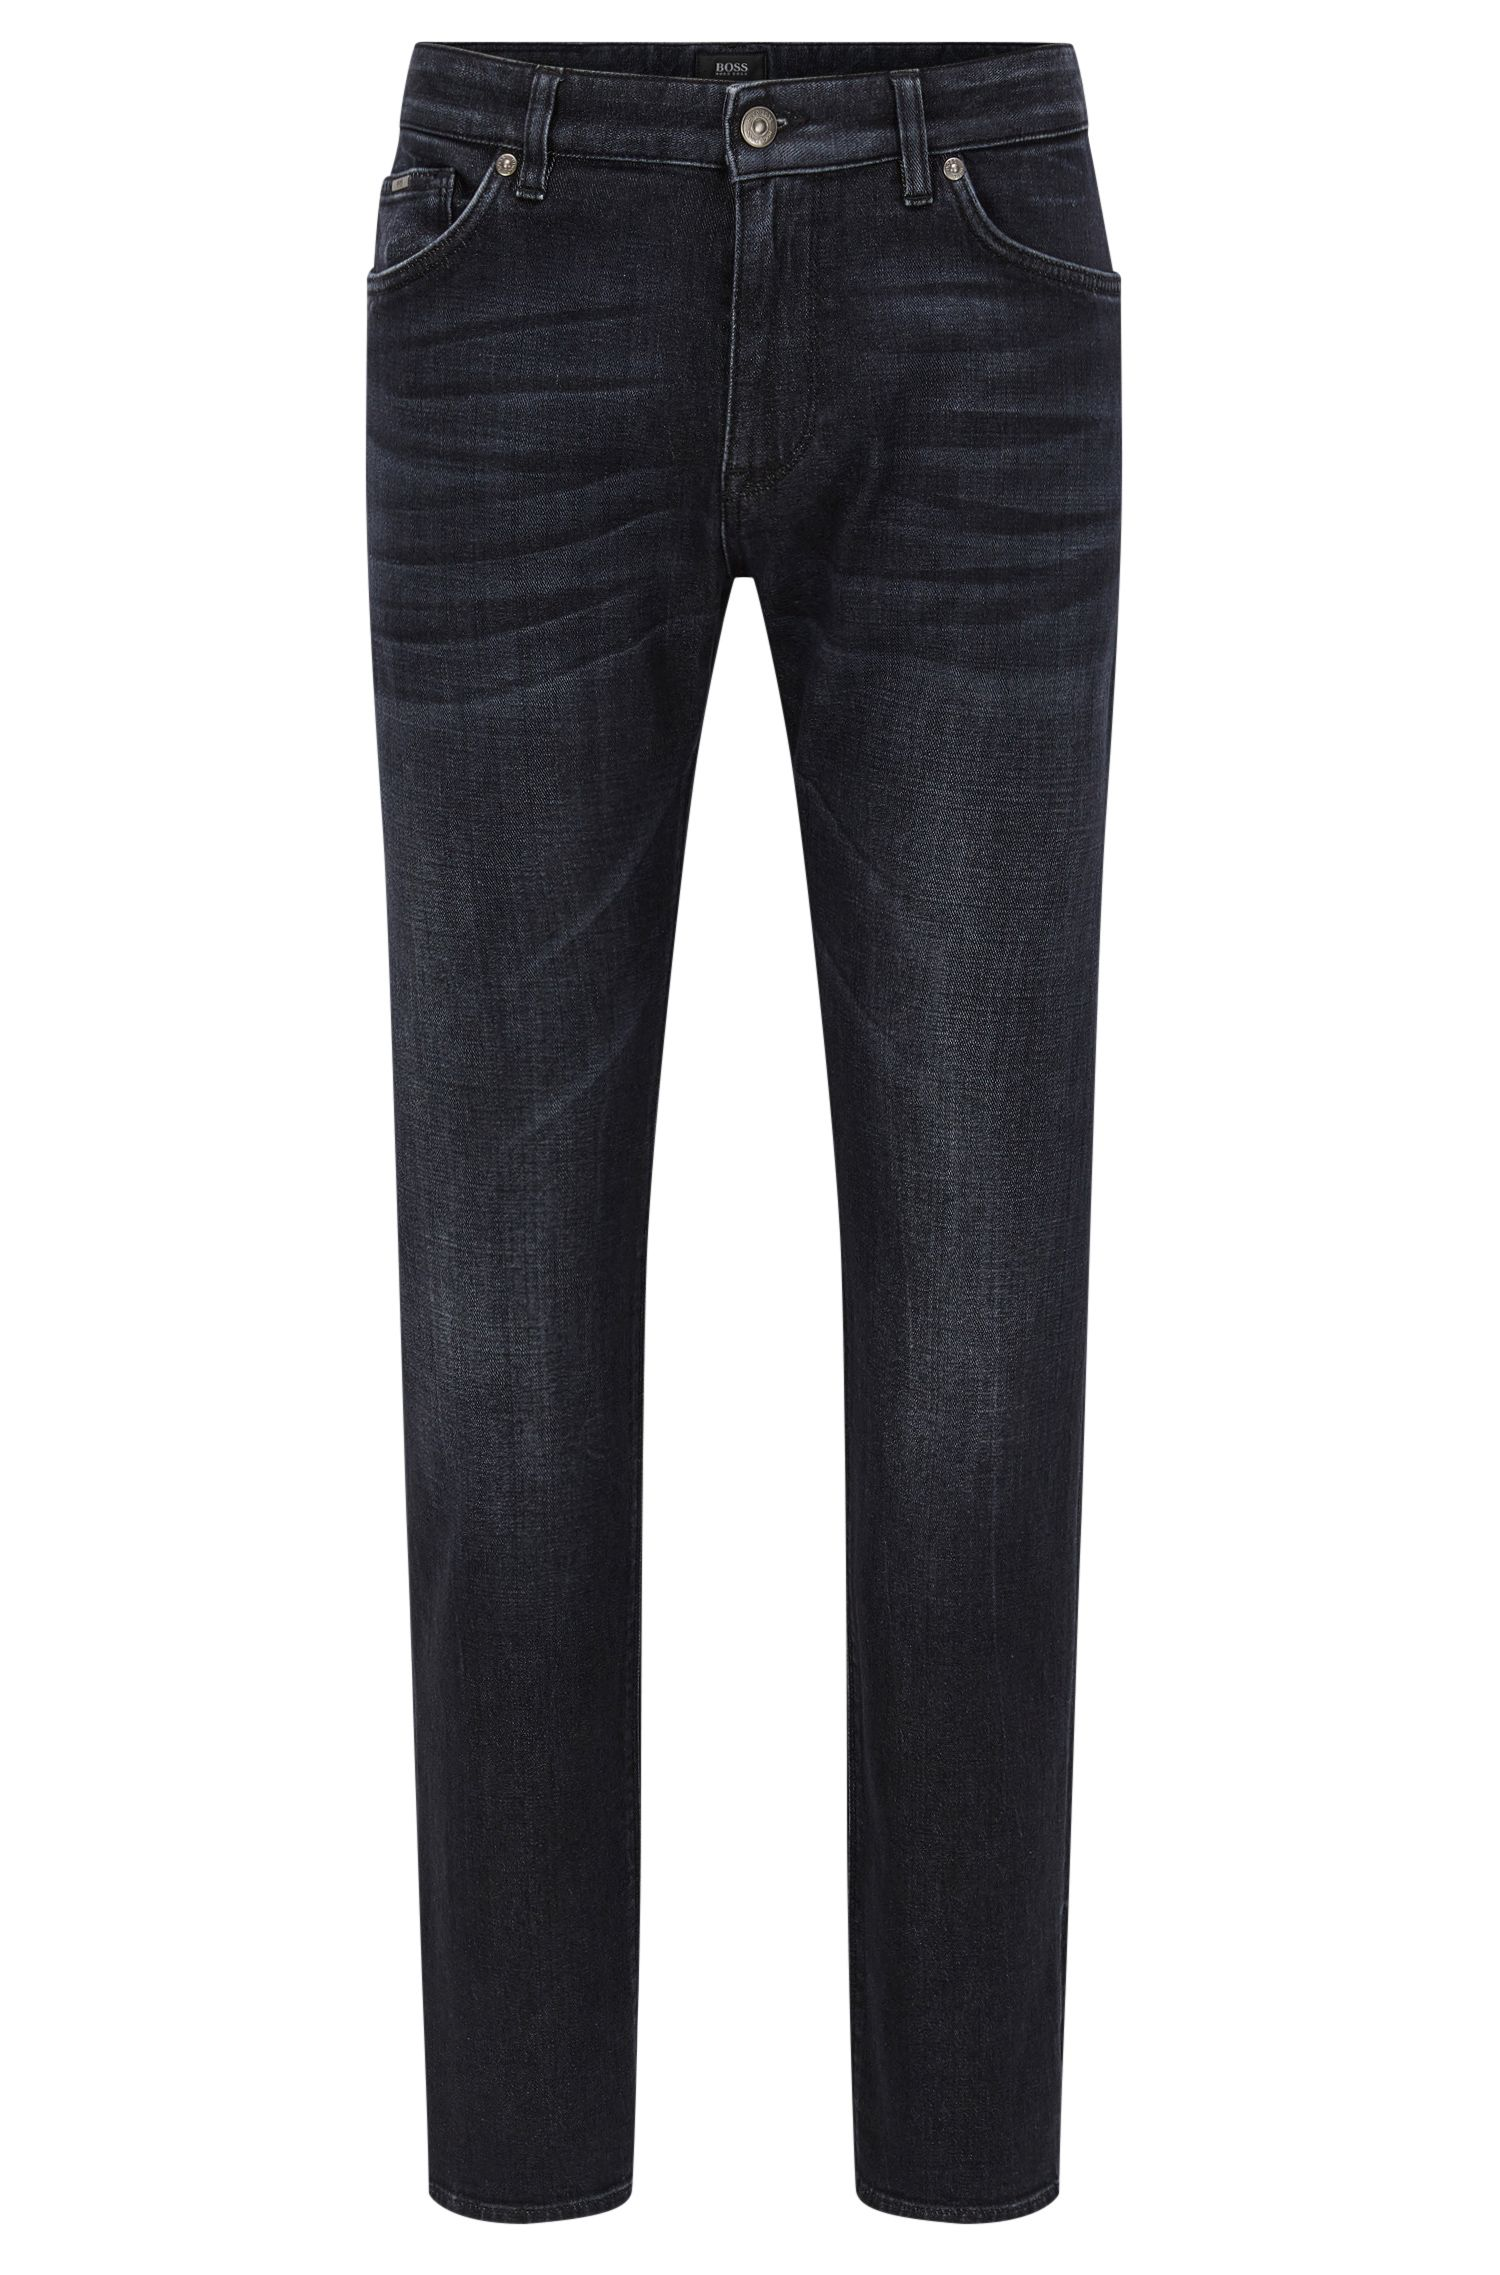 Vaqueros regular fit en denim negro con tacto de cachemira